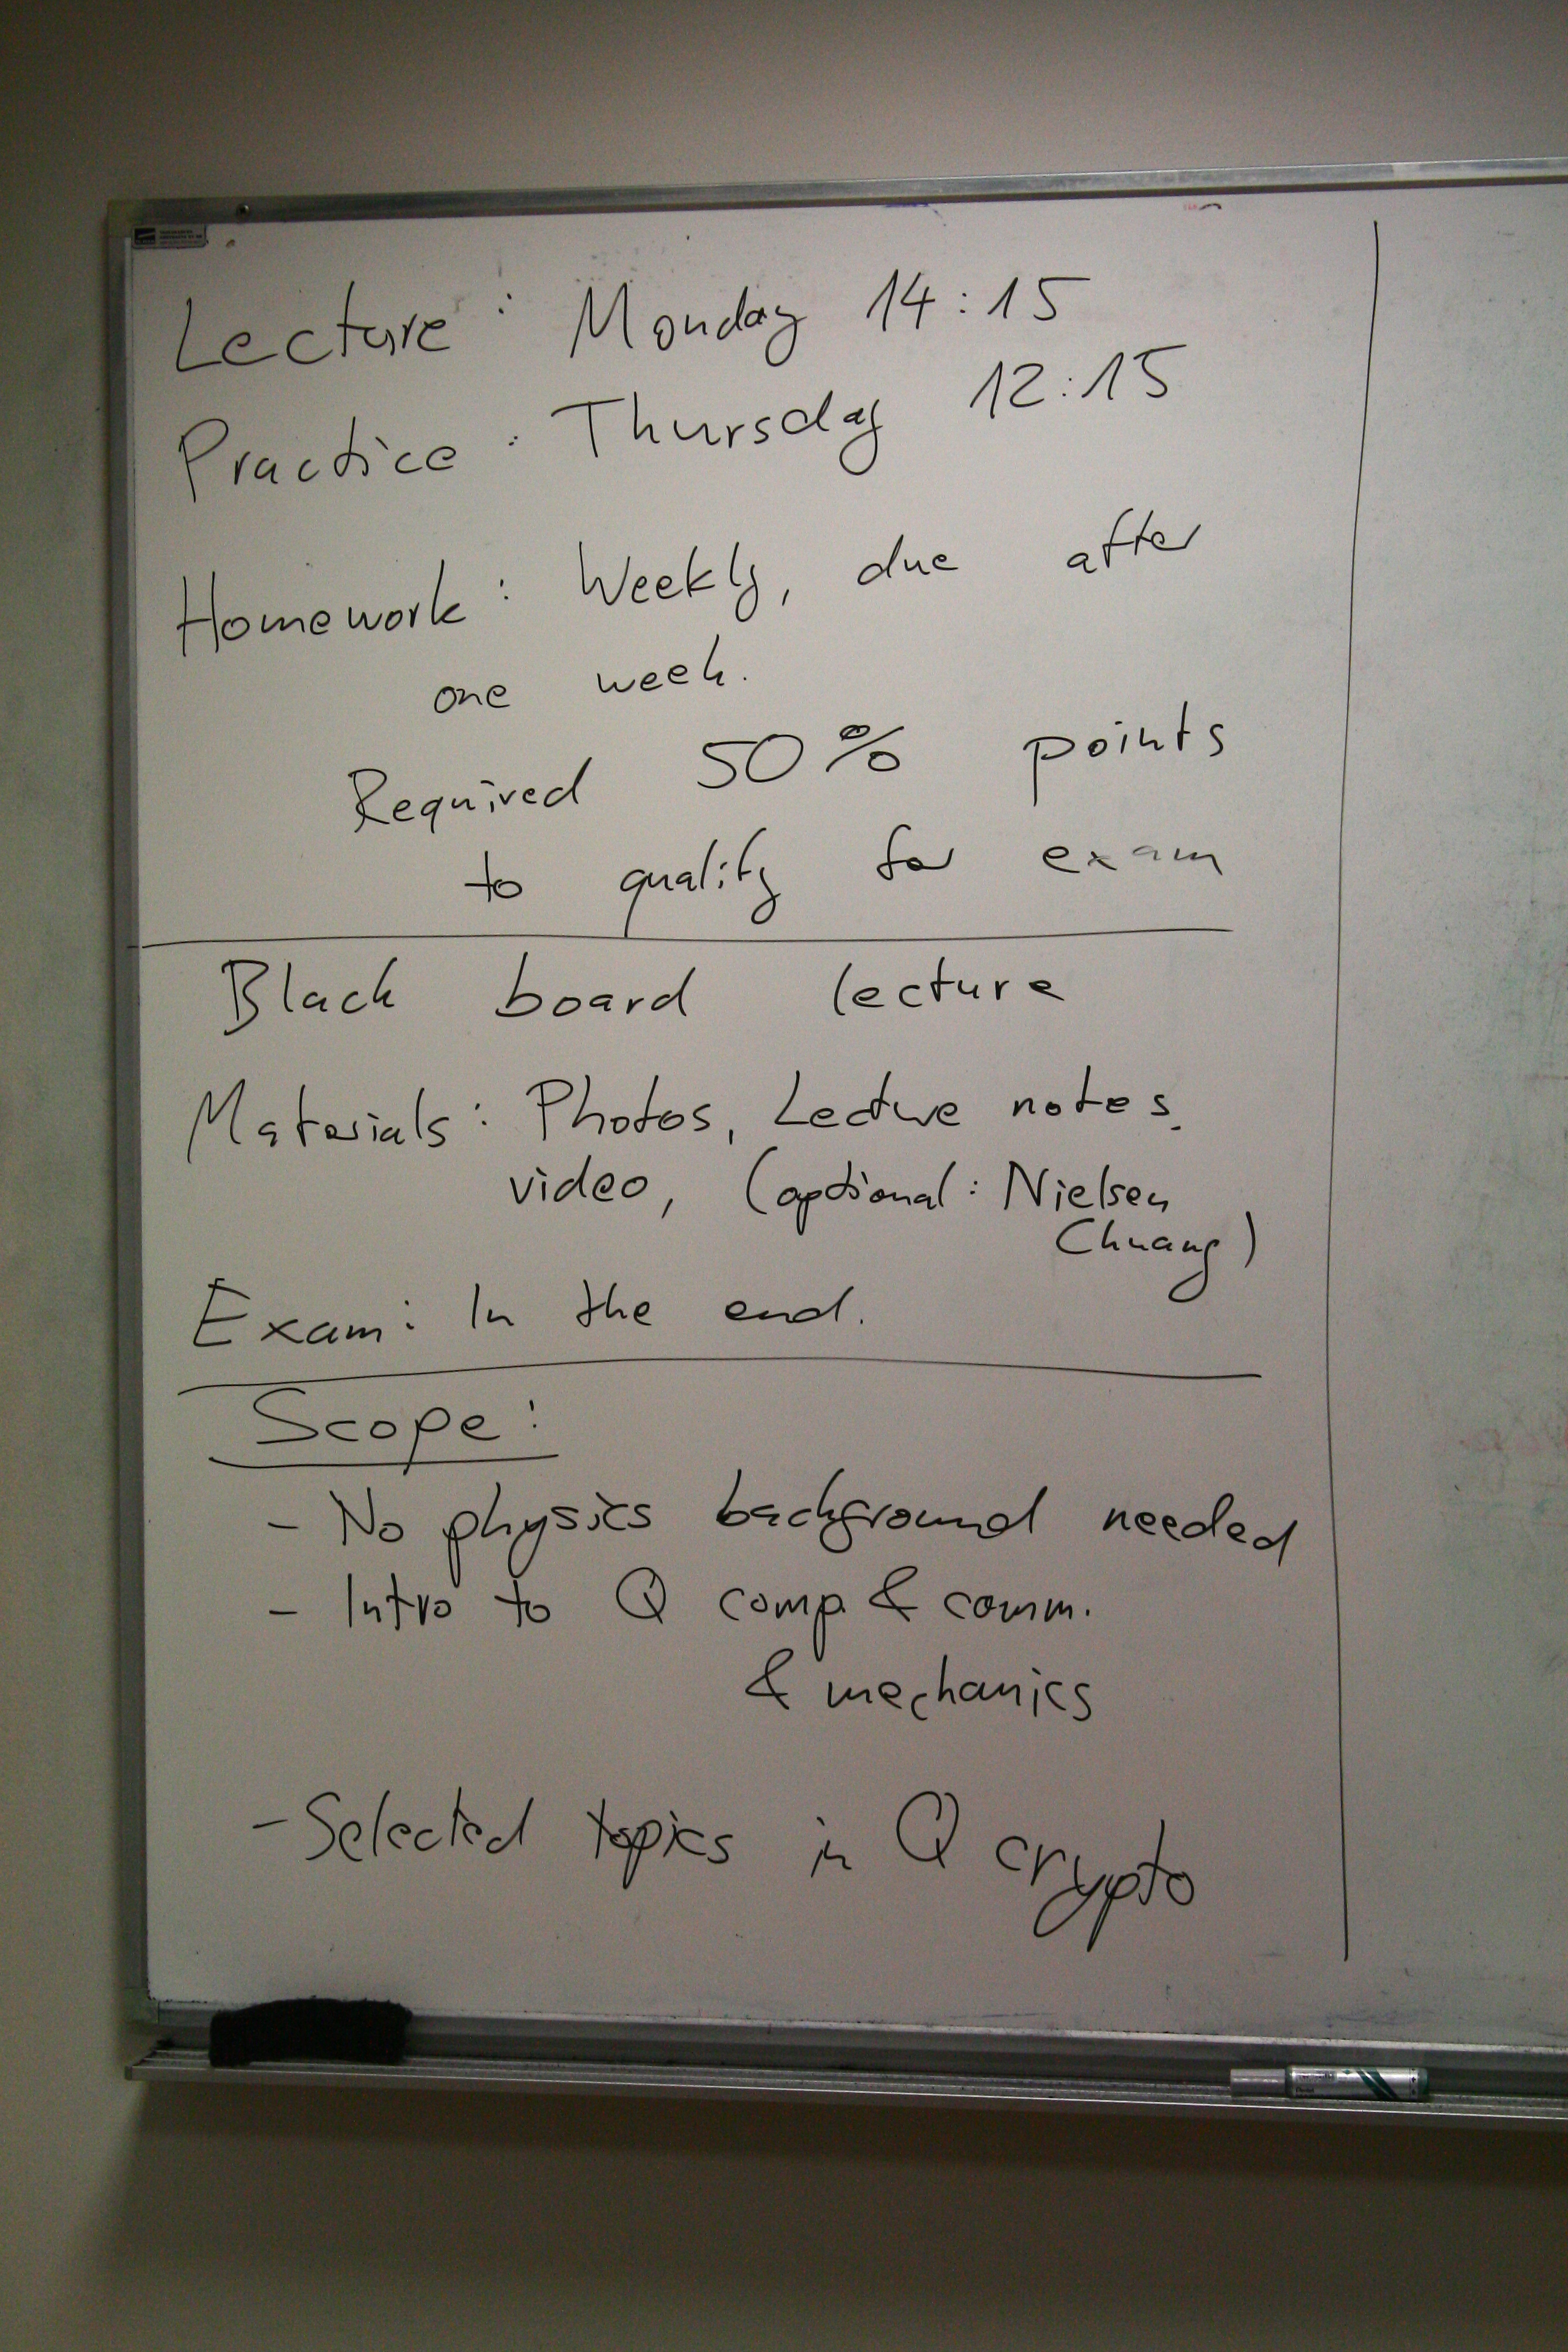 Quantum Cryptography fall 2015 - Black board photos